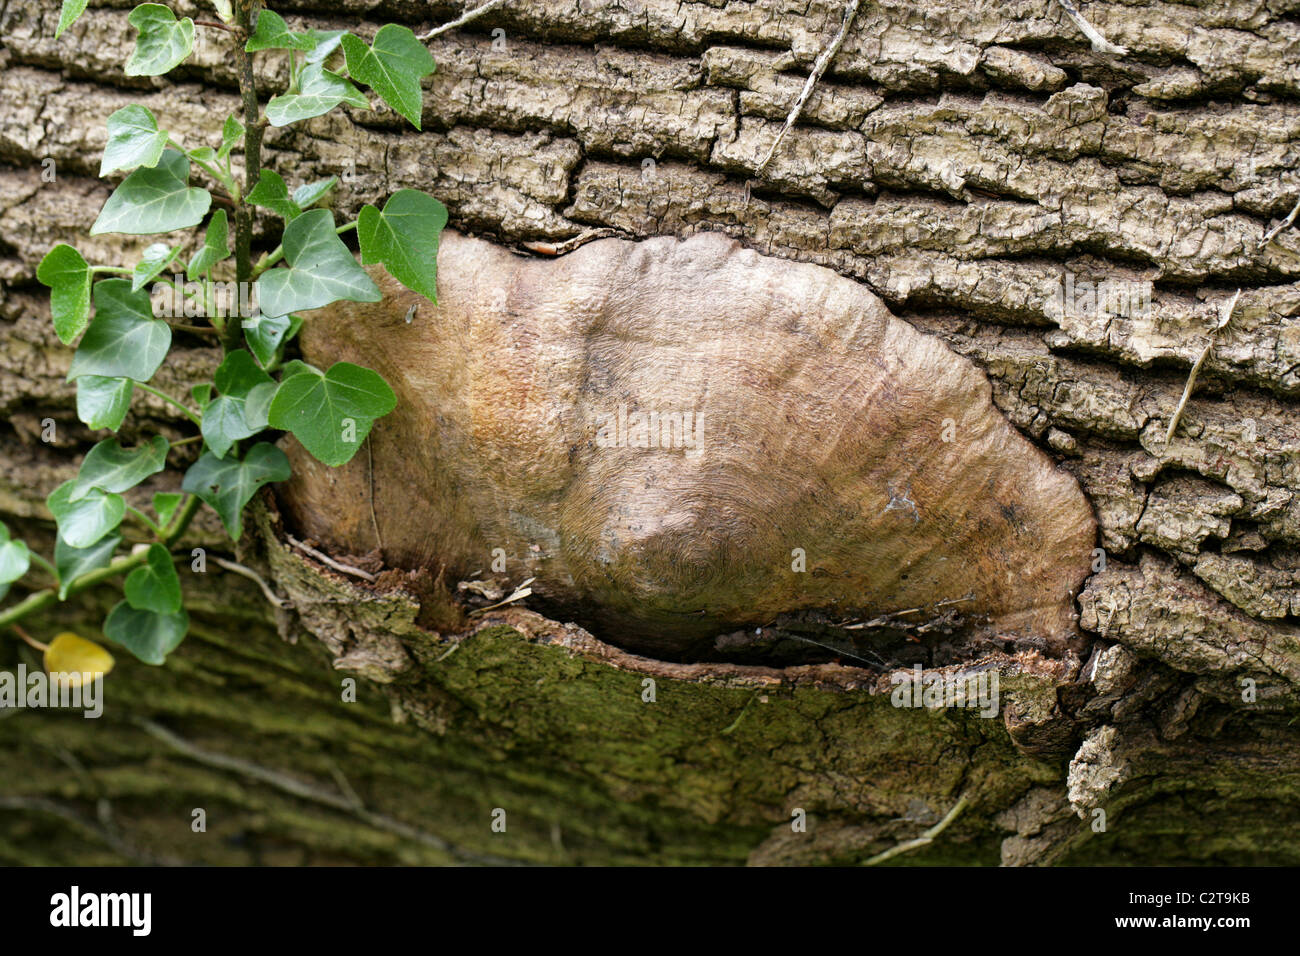 Unusual Raised Feature with Markings on a Dead Ash Tree Possibly Caused by the Burrowing Larva of the Clearwing - Stock Image